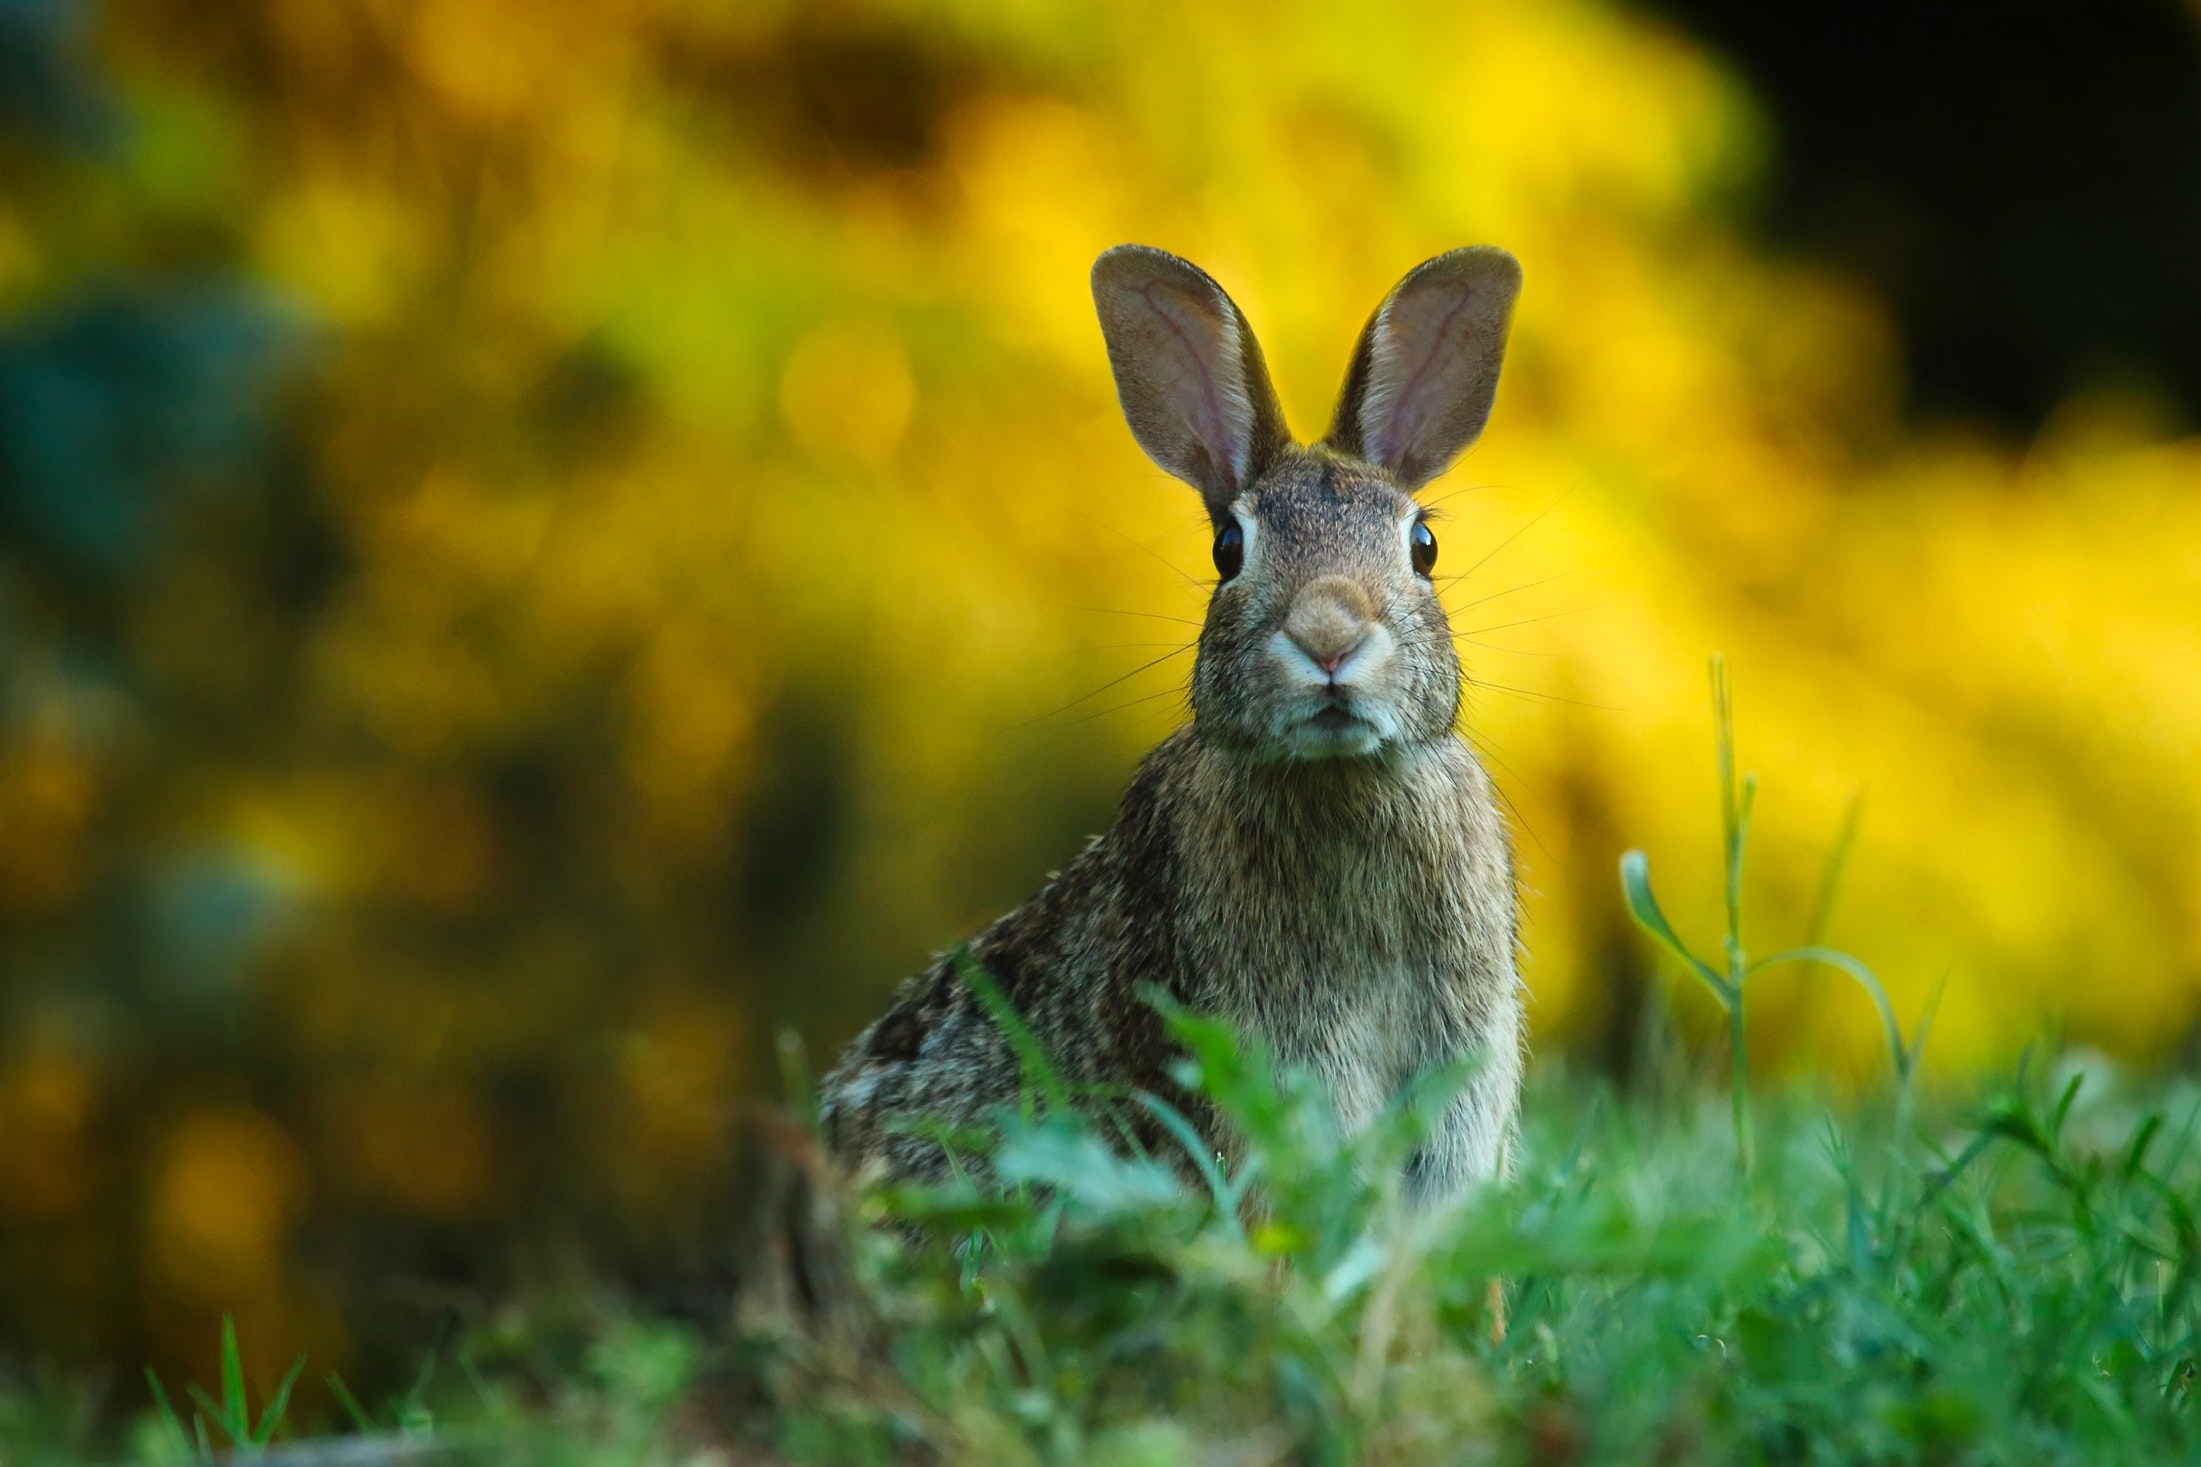 close-up-of-rabbit-on-field-247373